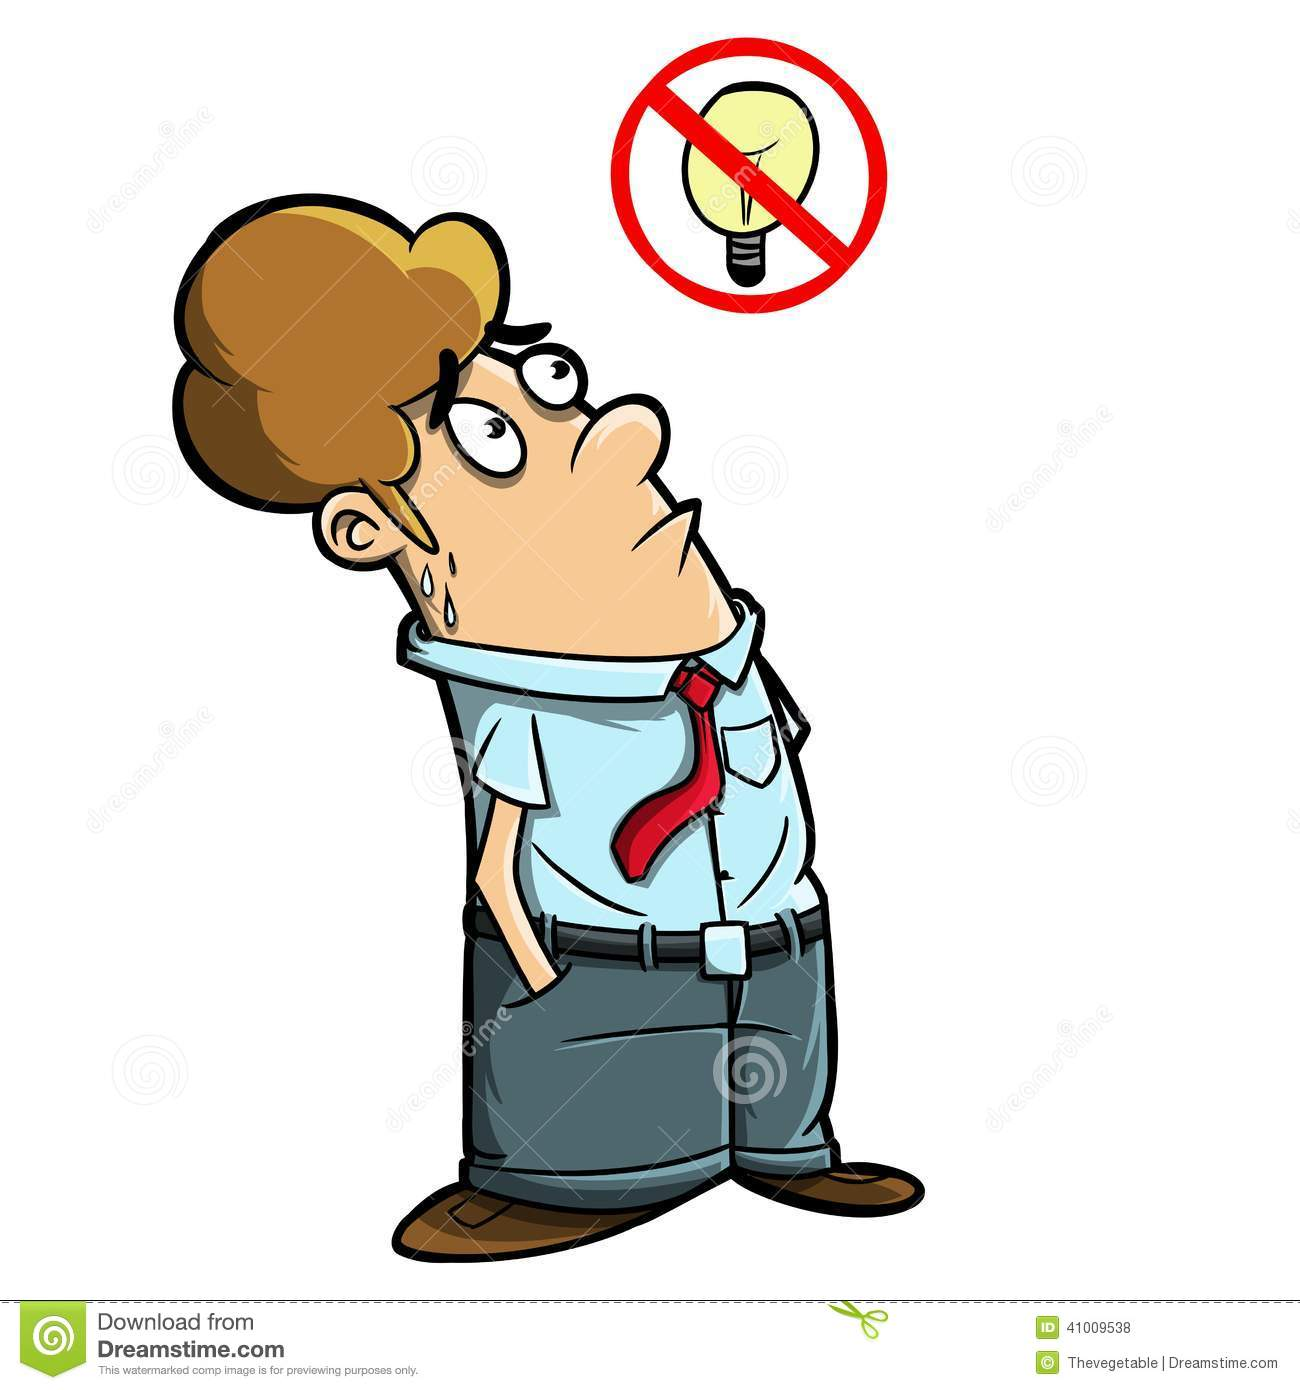 a person who is trying to Download cartoon people stock photos affordable and search from millions of royalty free images, photos and vectors.